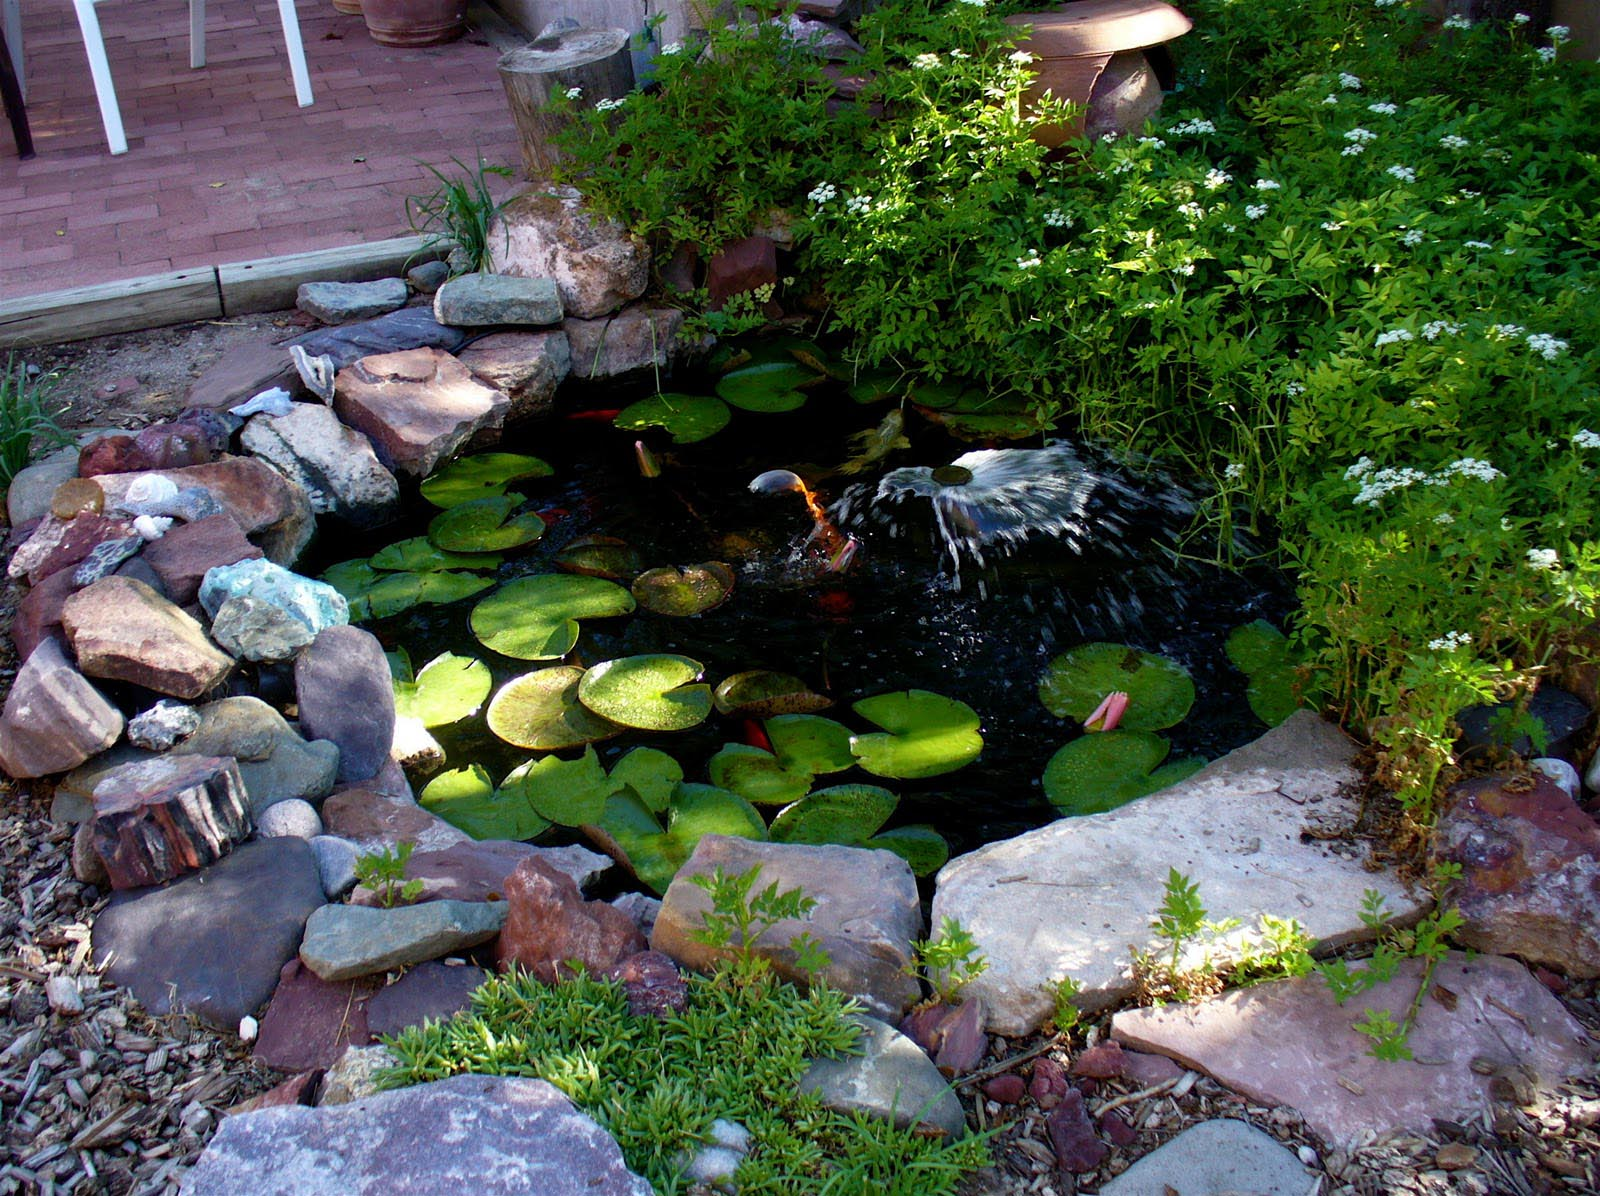 Garden fish pond ideas backyard design ideas for The backyard pond